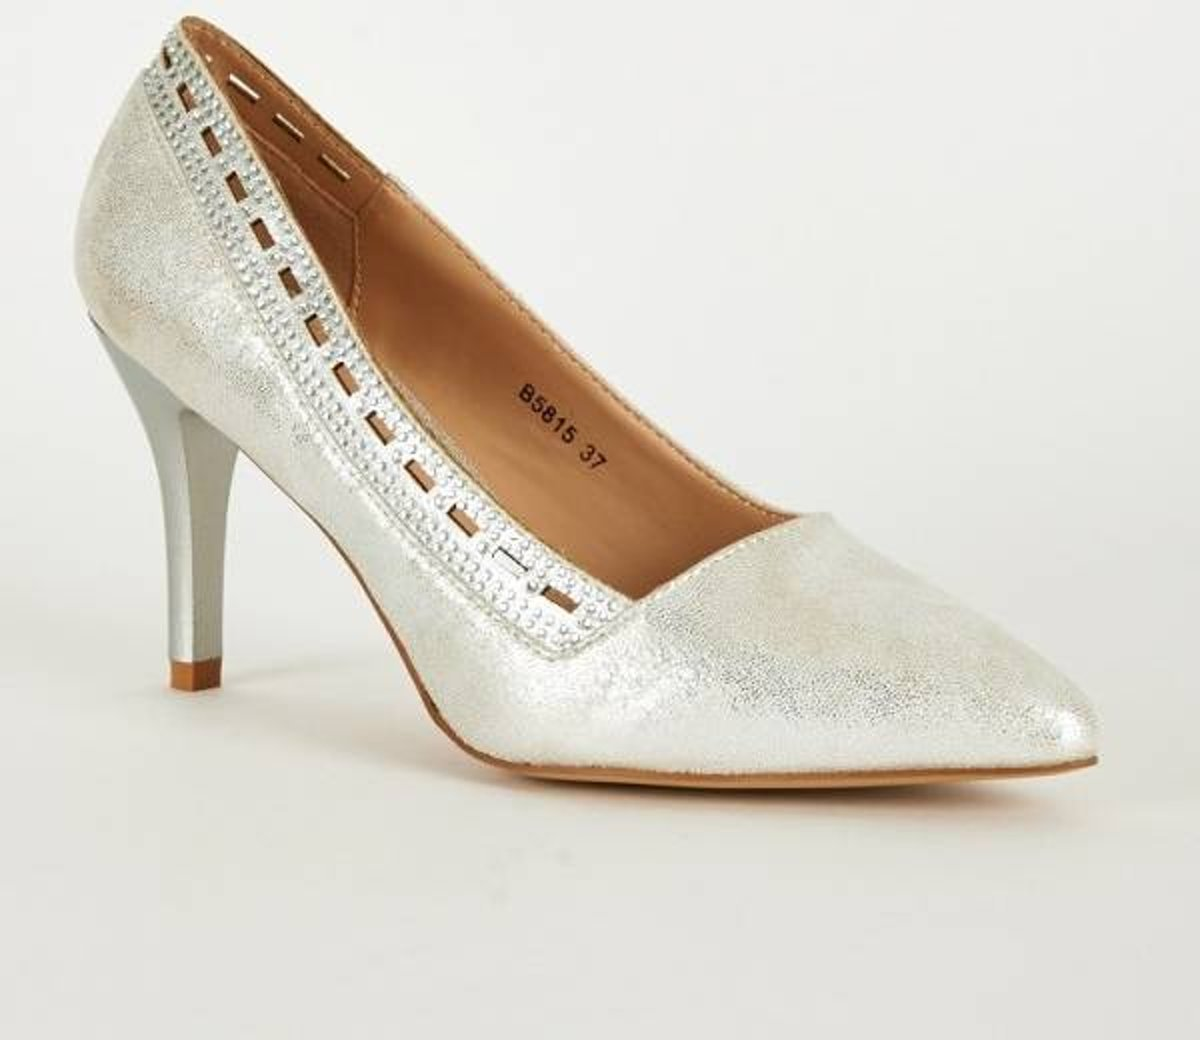 Pumps - High Heels - Zilver - Belle Women - Maat 36